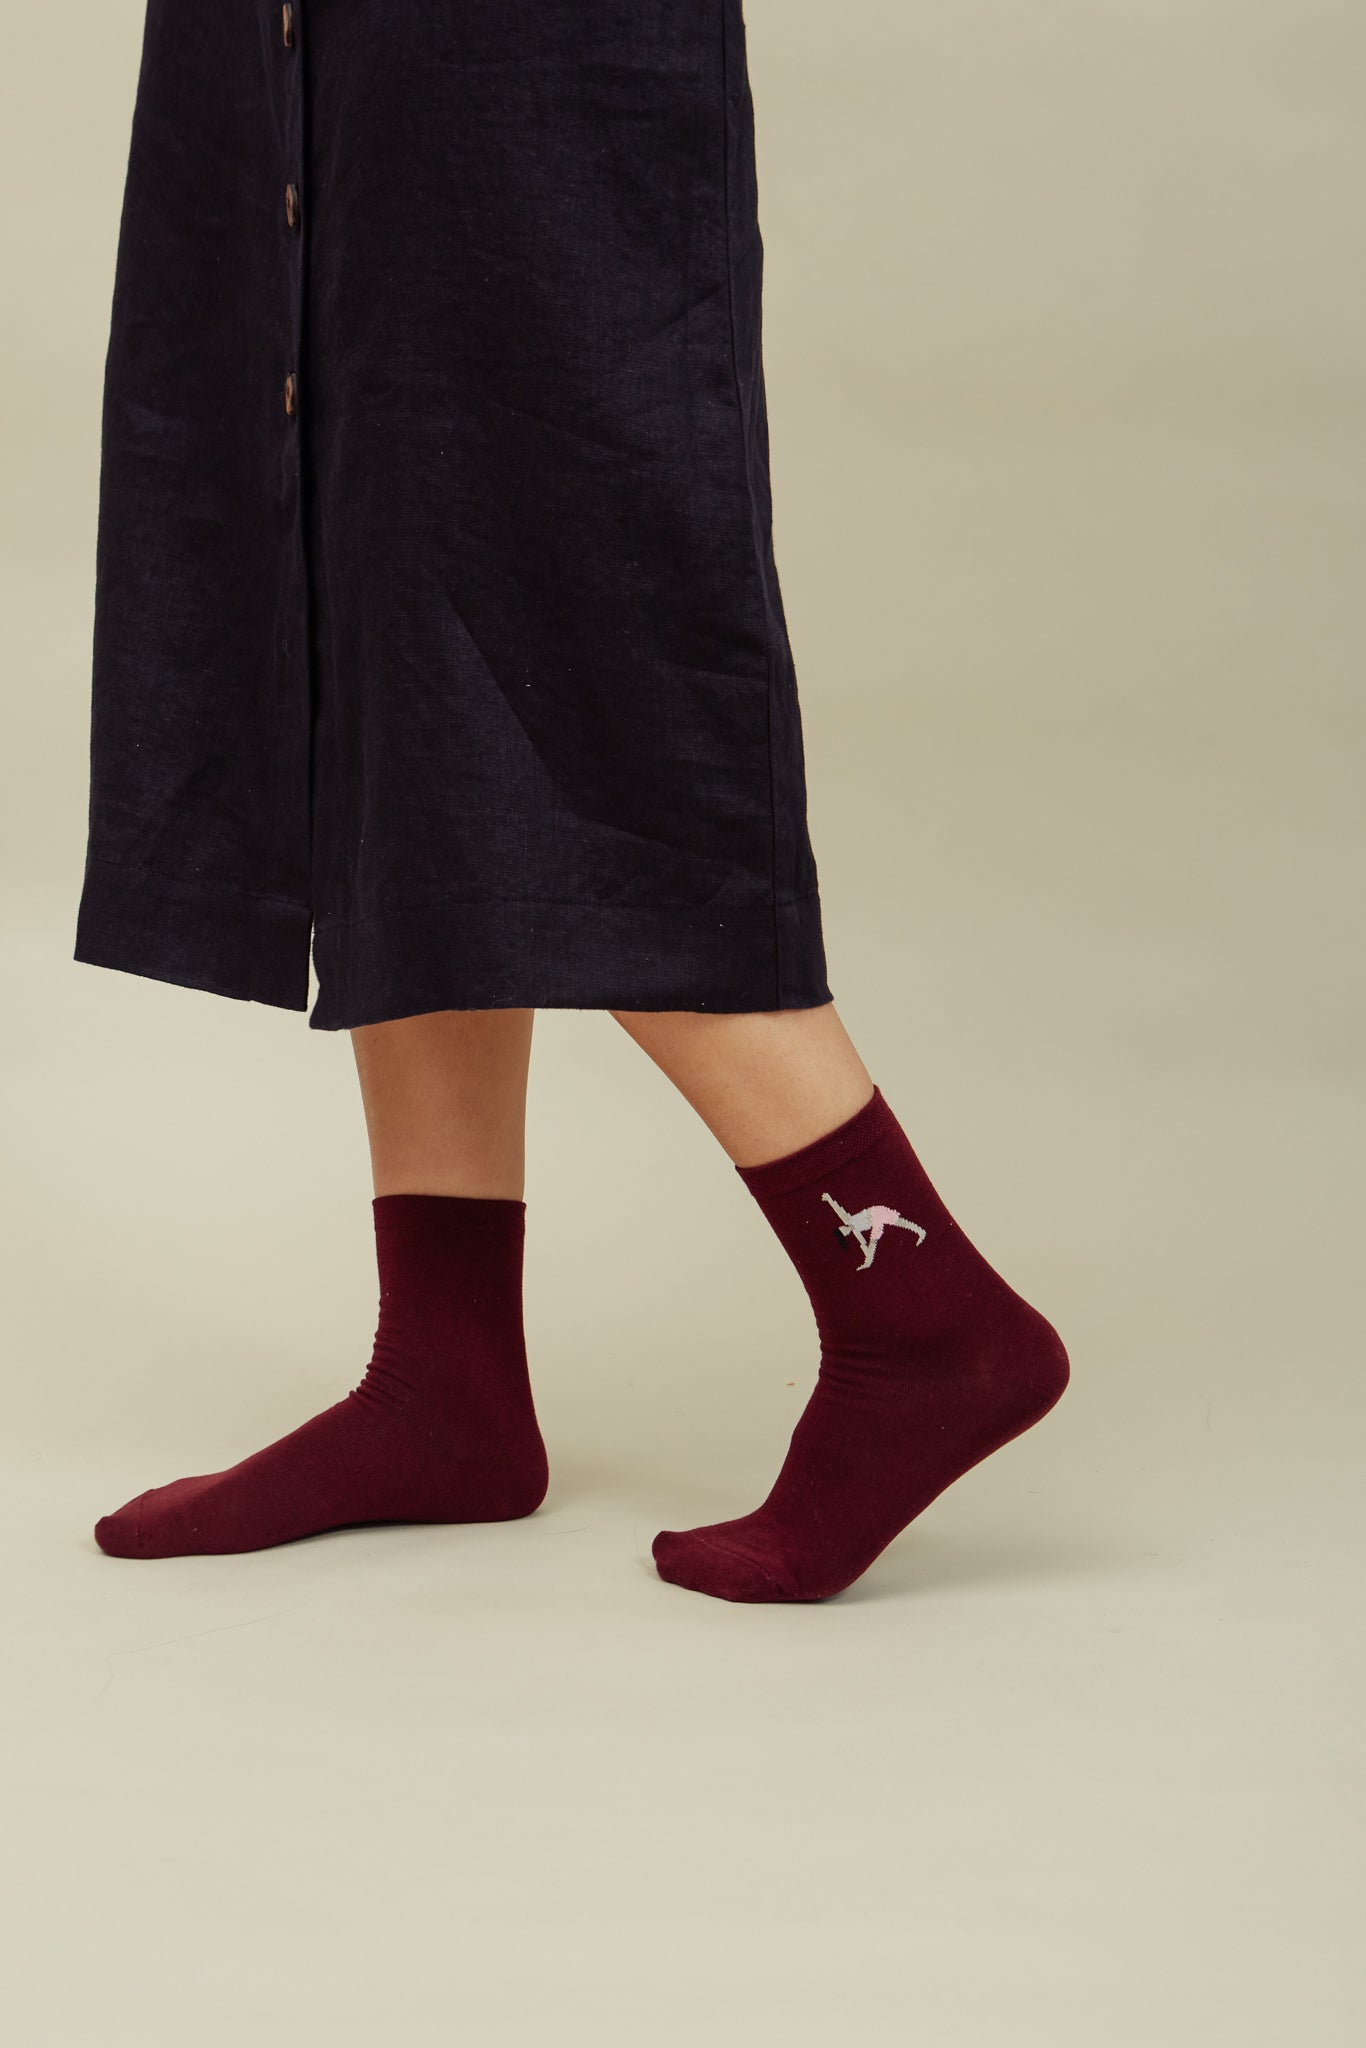 Wine Warrior Crew Sock